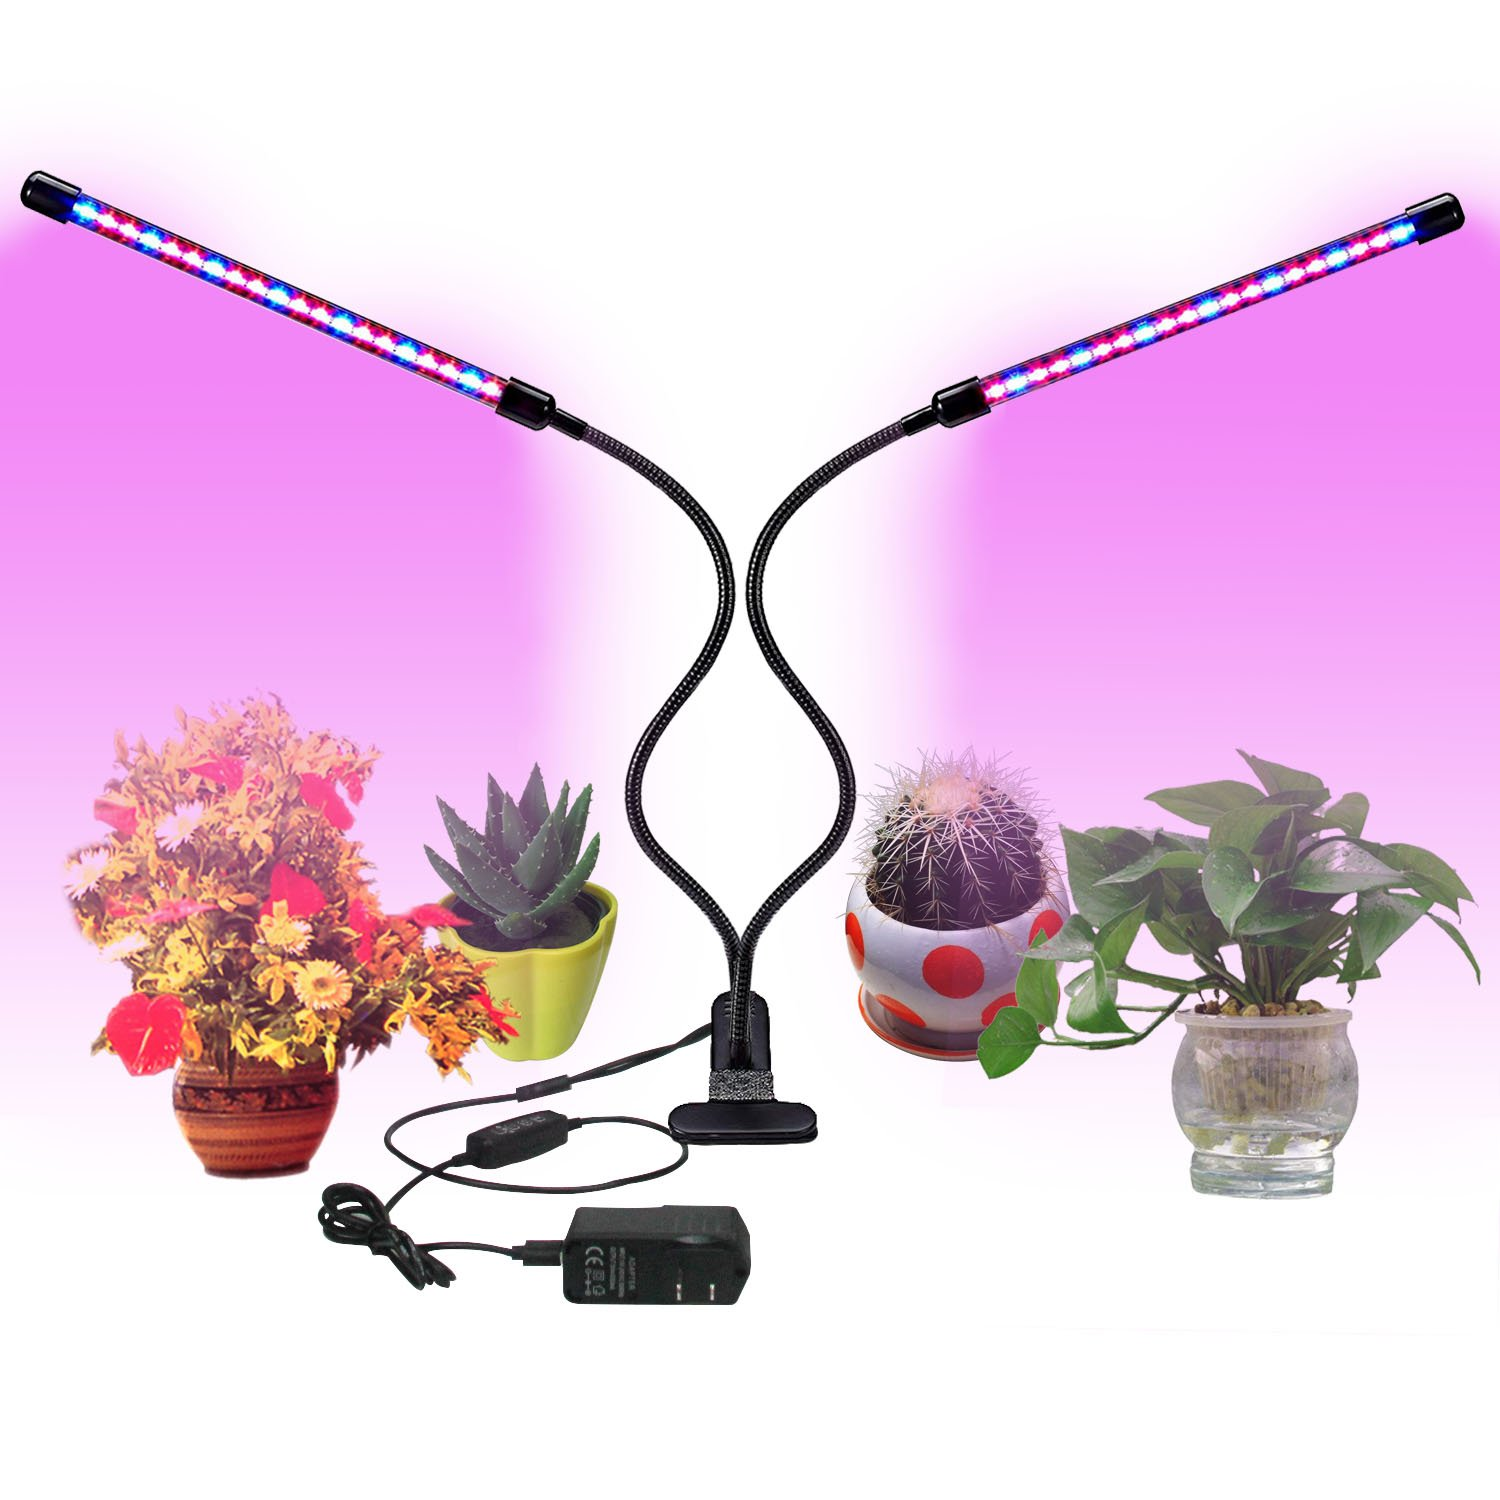 USB Grow Light,20W LED Grow Light for Indoor Plants,JEKOMI [2018 Upgraded Version]Plant Grow Lamp with 40 LED 9 Dimmable Levels,Red/Blue Spectrum, 3/9/12H Timer,3 Switch Modes